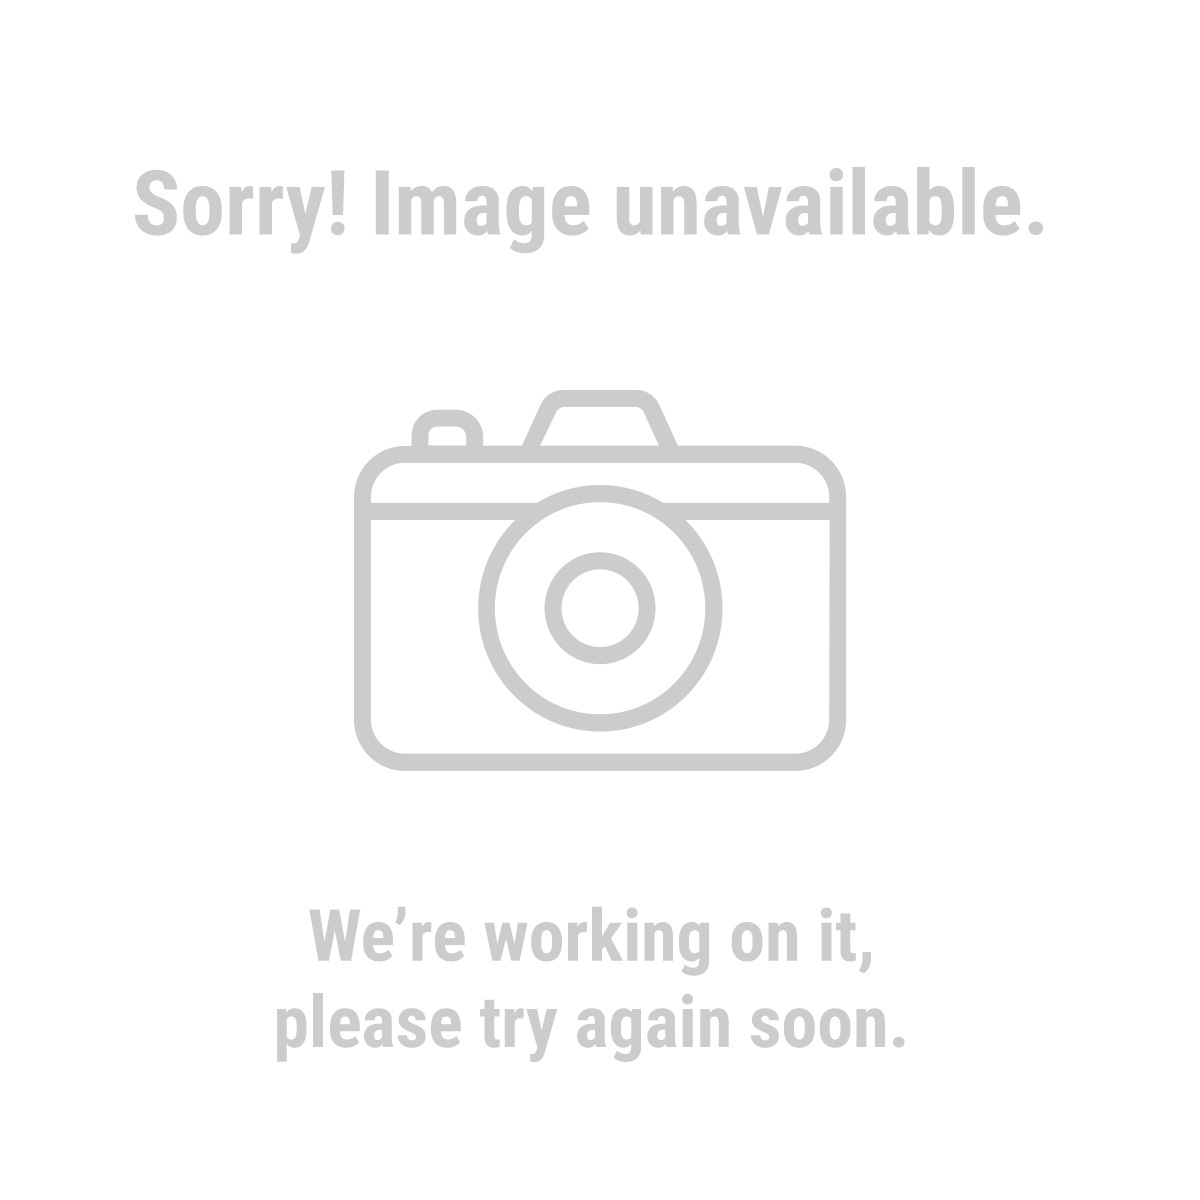 Predator Engines 62553 8 HP (301cc) OHV Horizontal Shaft Gas Engine EPA/CARB